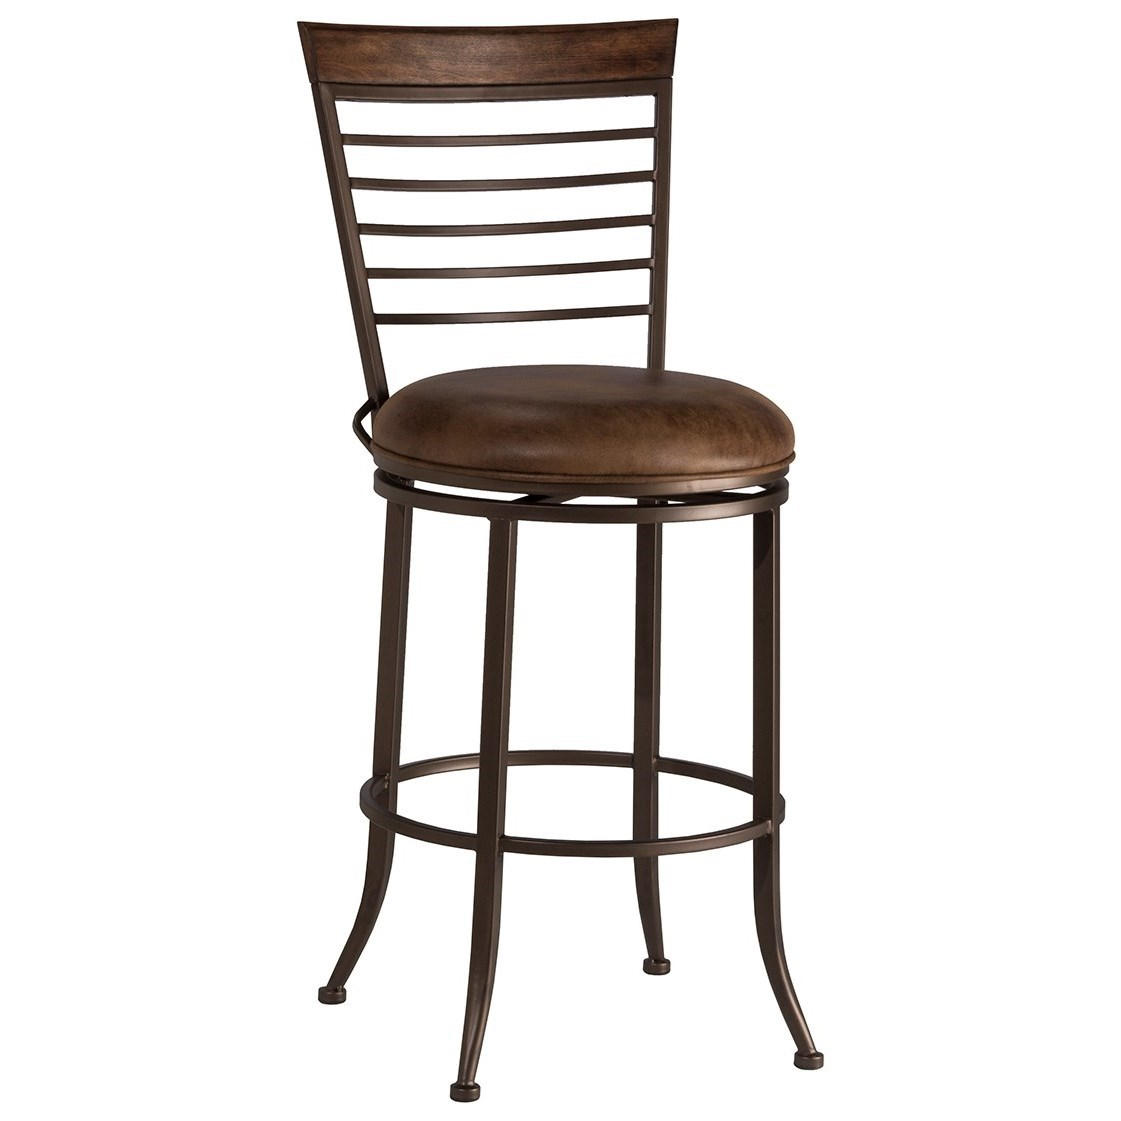 Terrell Commercial Grade Swivel Counter Stool by Hillsdale at Northeast Factory Direct